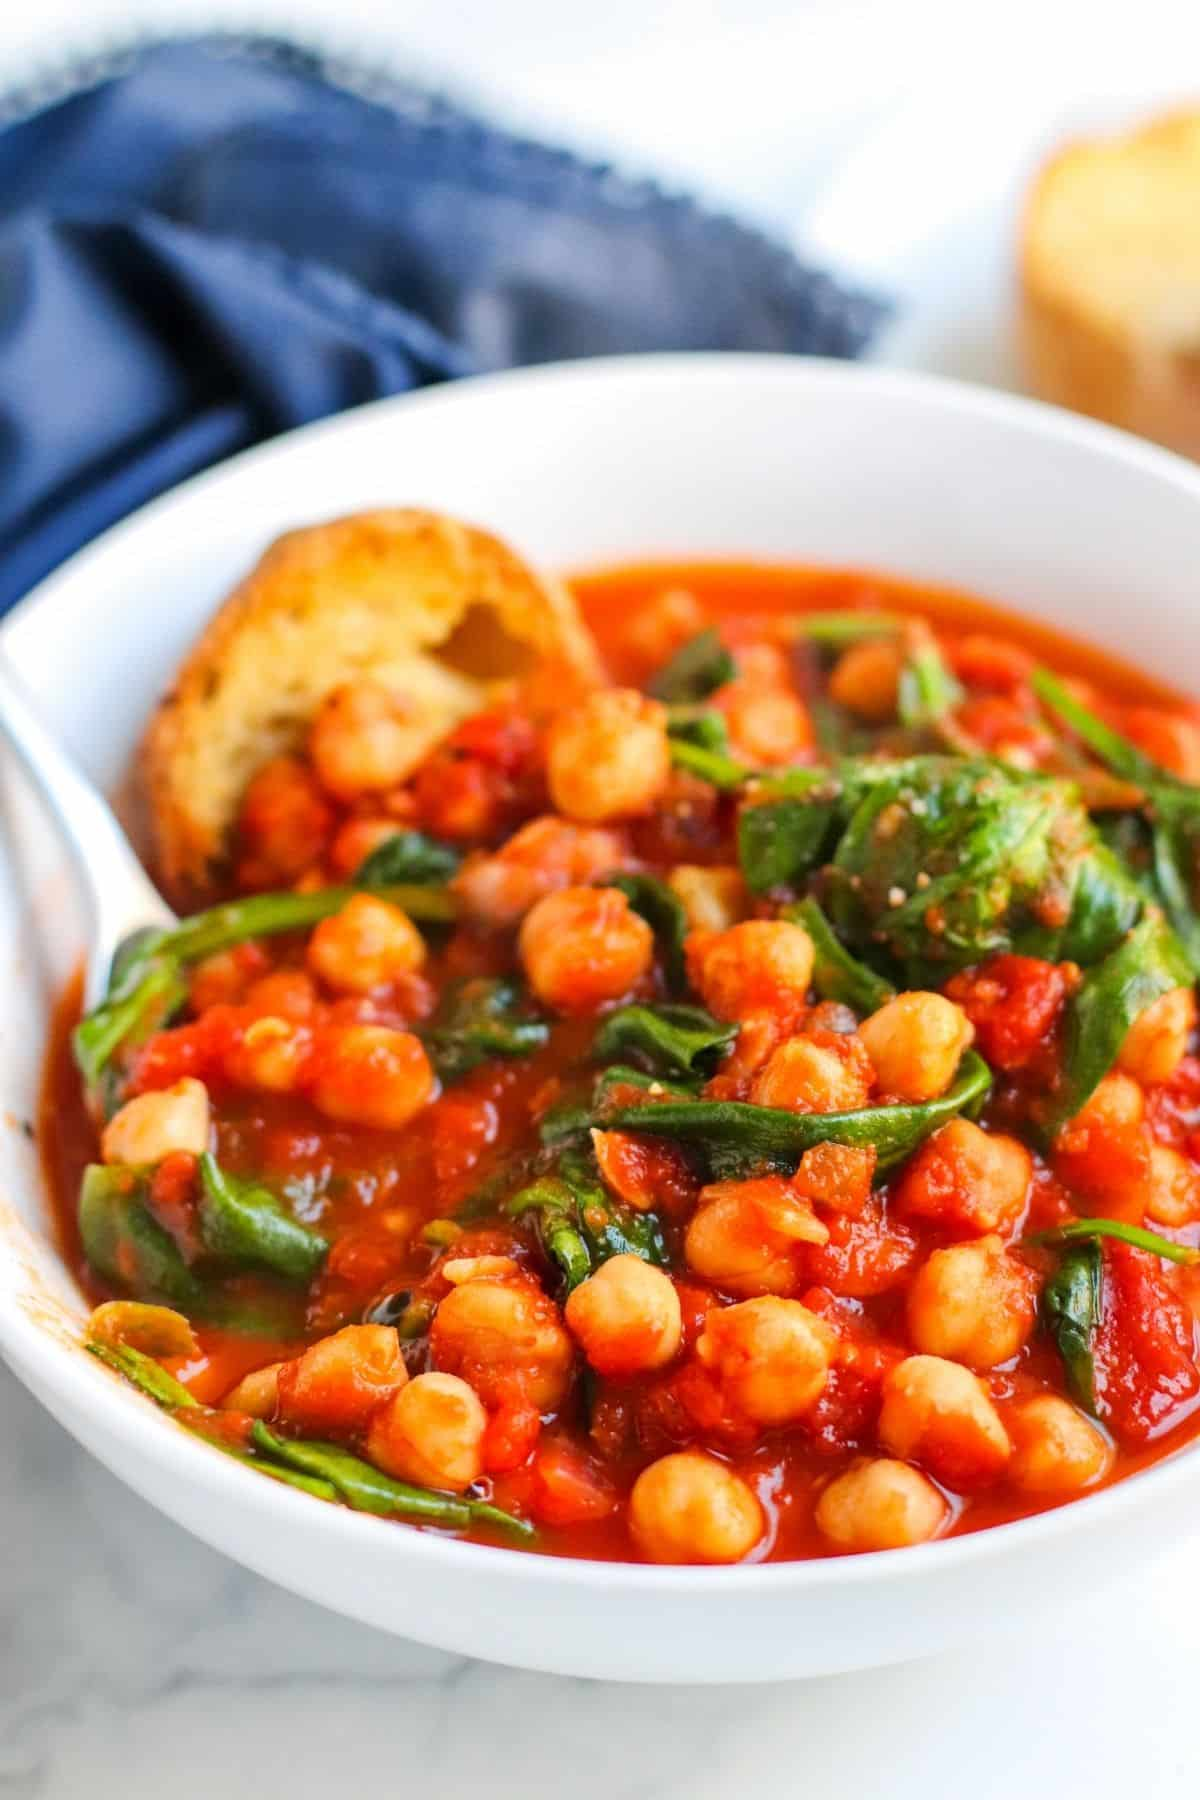 Closeup of bowl of chickpea stew with a spoon in it